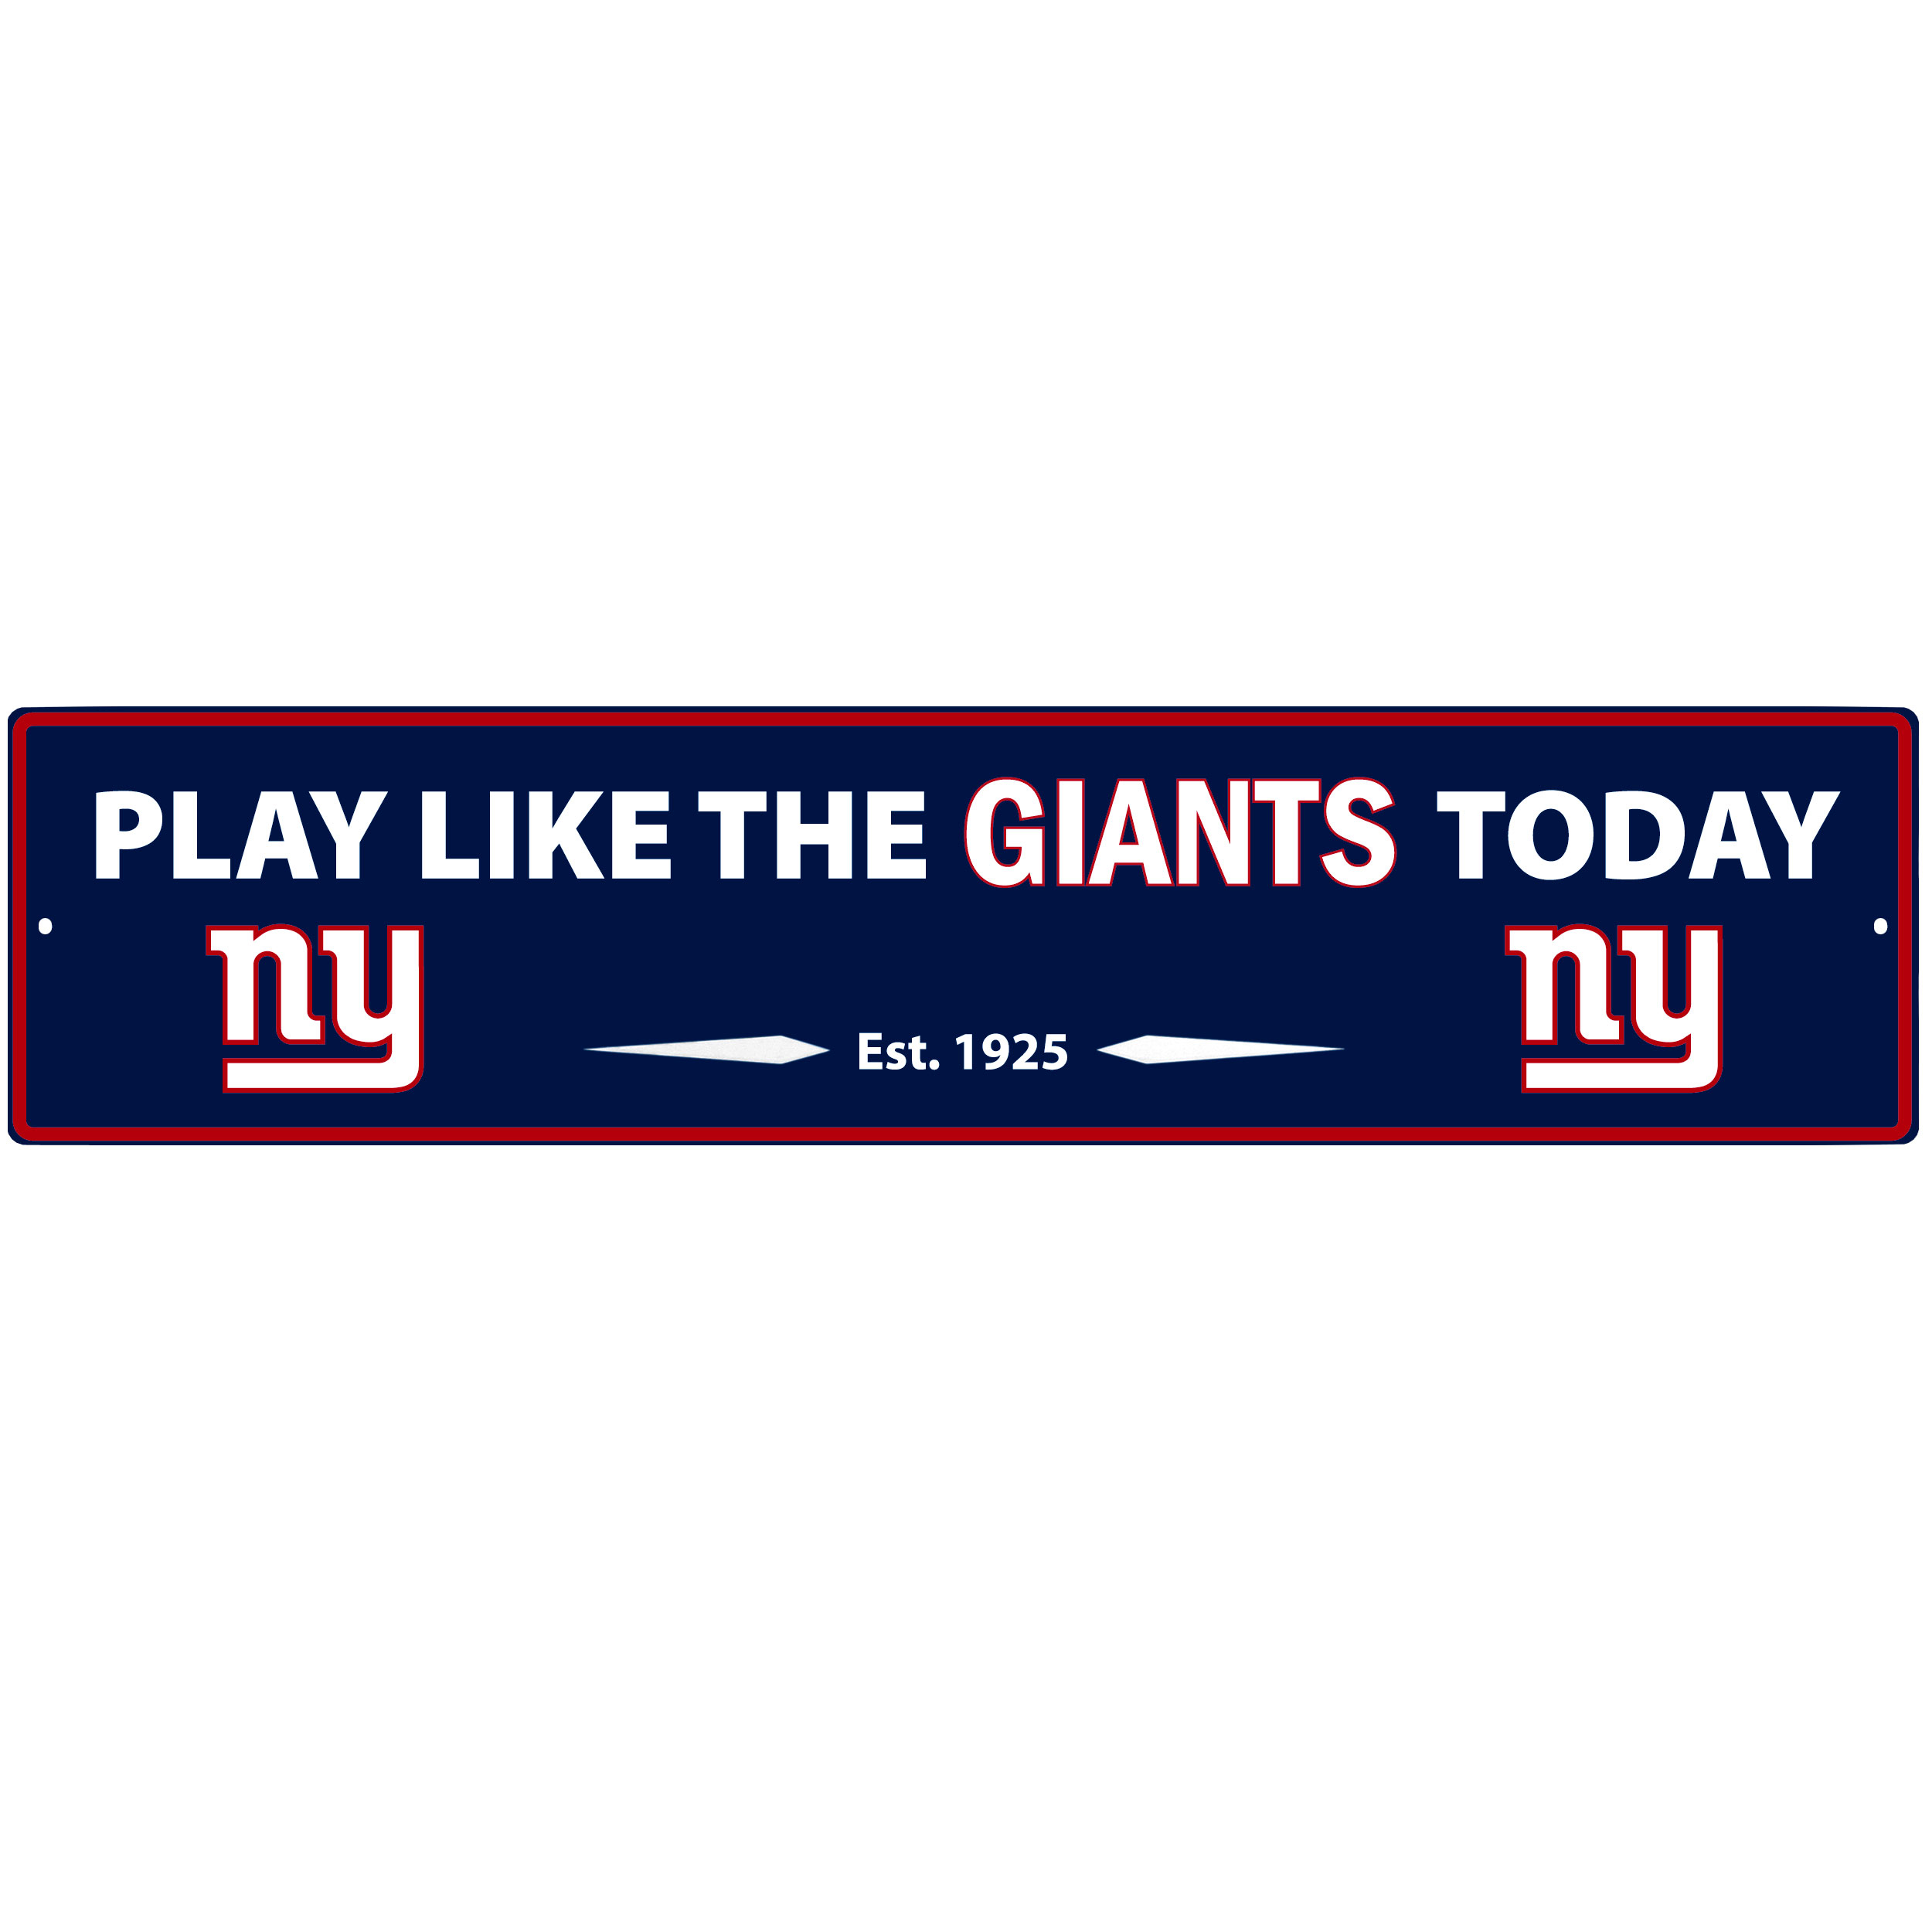 New York Giants Street Sign Wall Plaque - This motivational plaque is perfect for hanging over the doorway of your fan cave reminding you to play like your champion New York Giants! The sign is 20 inches wide and made of light-weight stamped aluminum. The bright team colors and classic design make this a must-have home décor accessory that would look great in any game room, living room or office!